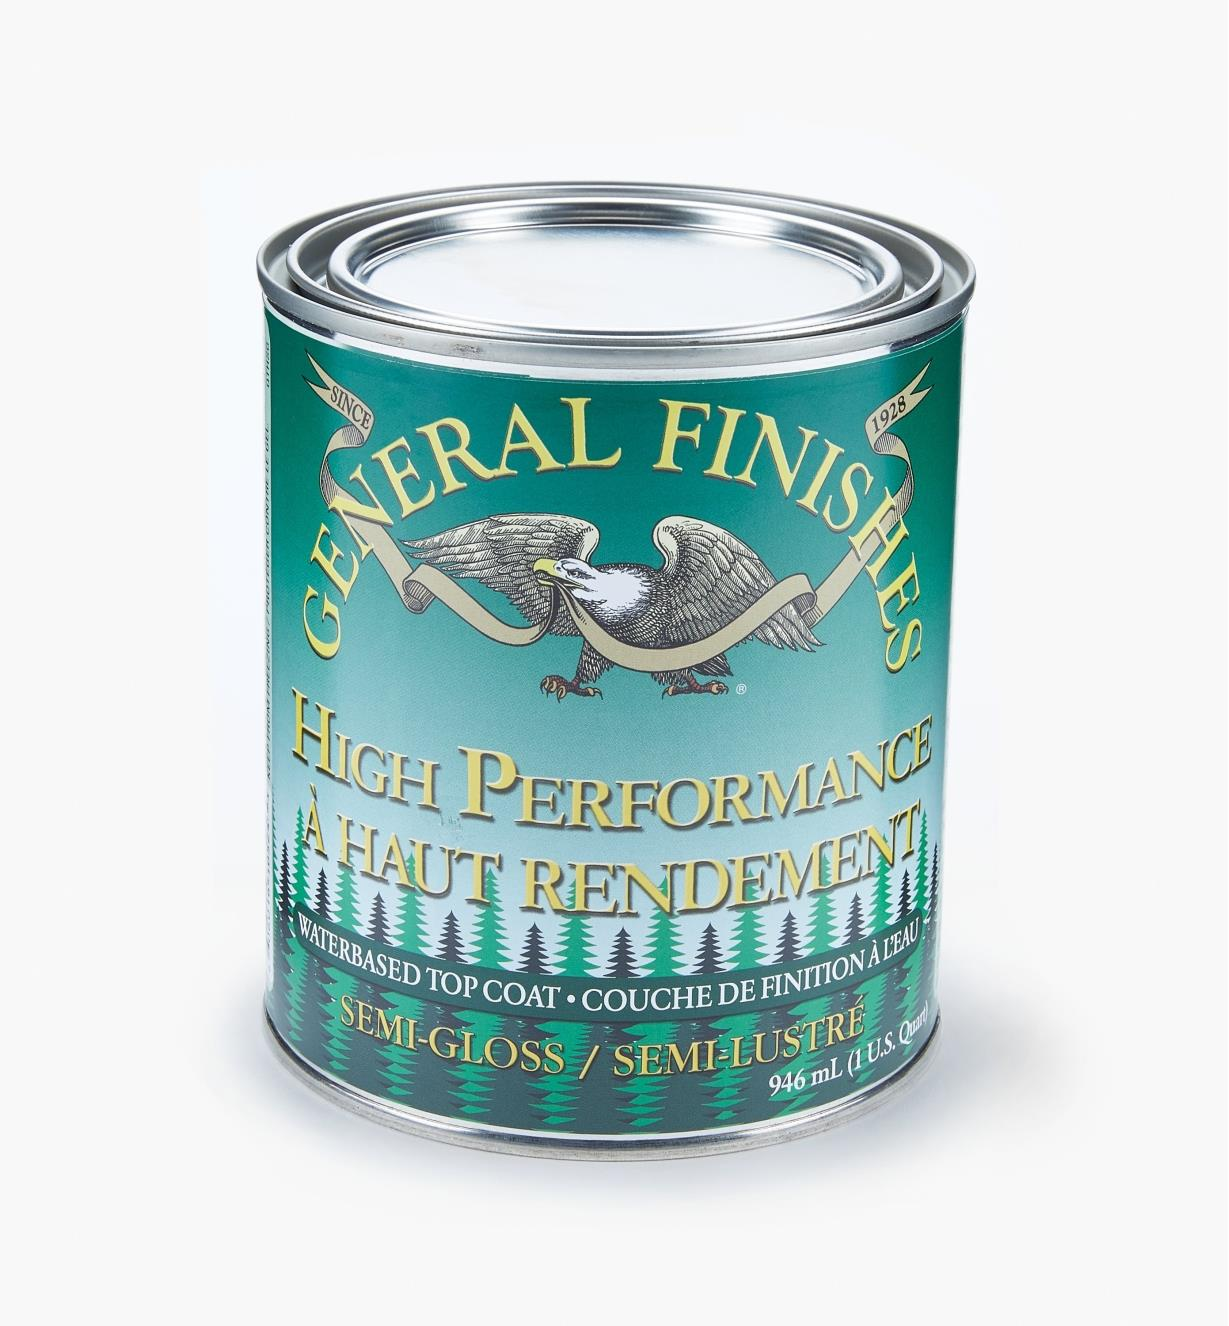 56Z1605 - High Performance Semi-Gloss Varnish, quart